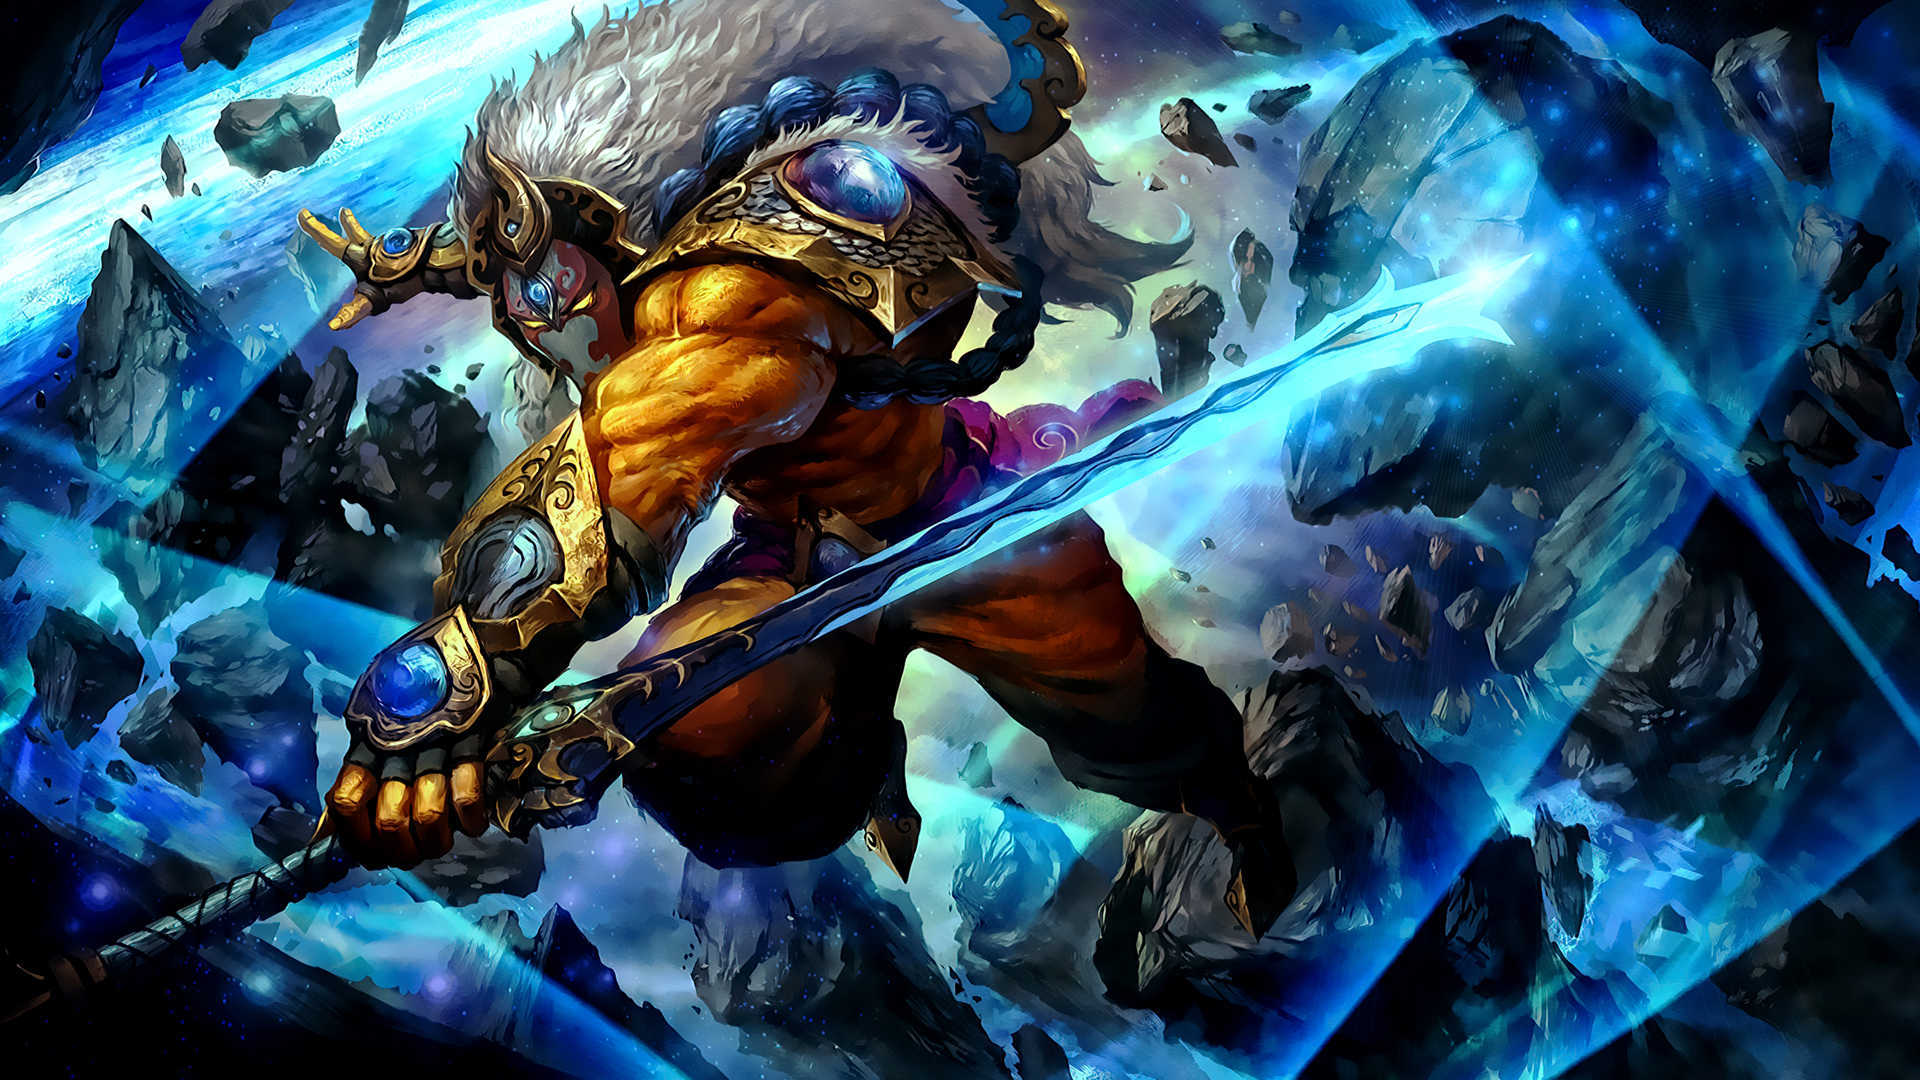 Amazing Dota 2 Hd Background For Pc Wallpapergaming